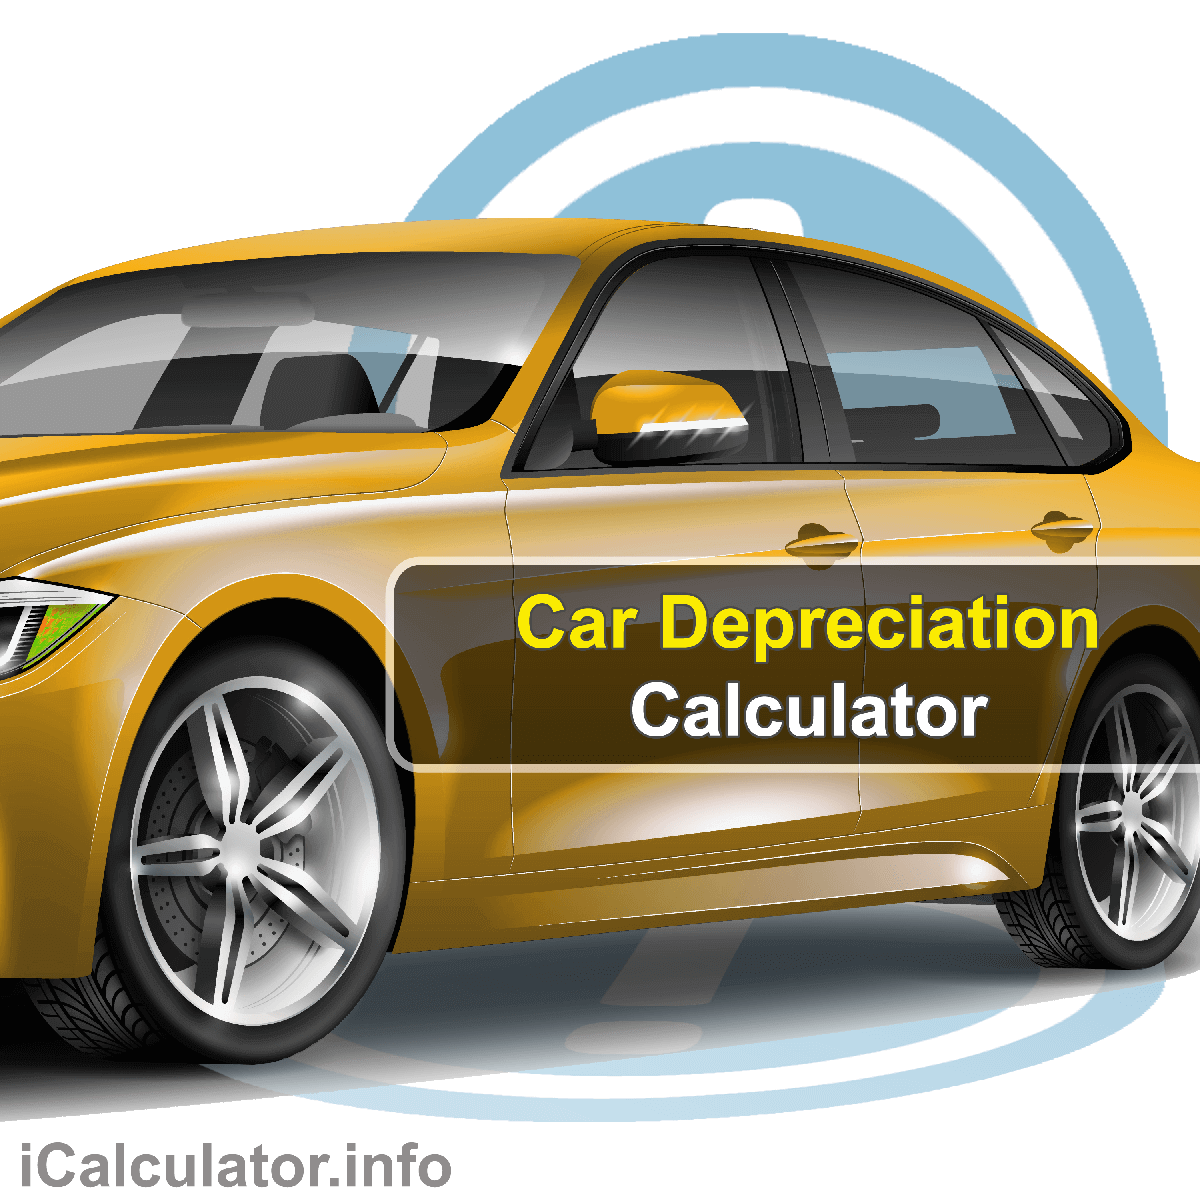 Car Depreciation Calculator. This image provides details of how to calculate depreciation costs of a car using a calculator and notepad. By using the car depreciation formula, the Car Depreciation Calculator provides a true calculation of the future value of a car when factoring in depreciation.